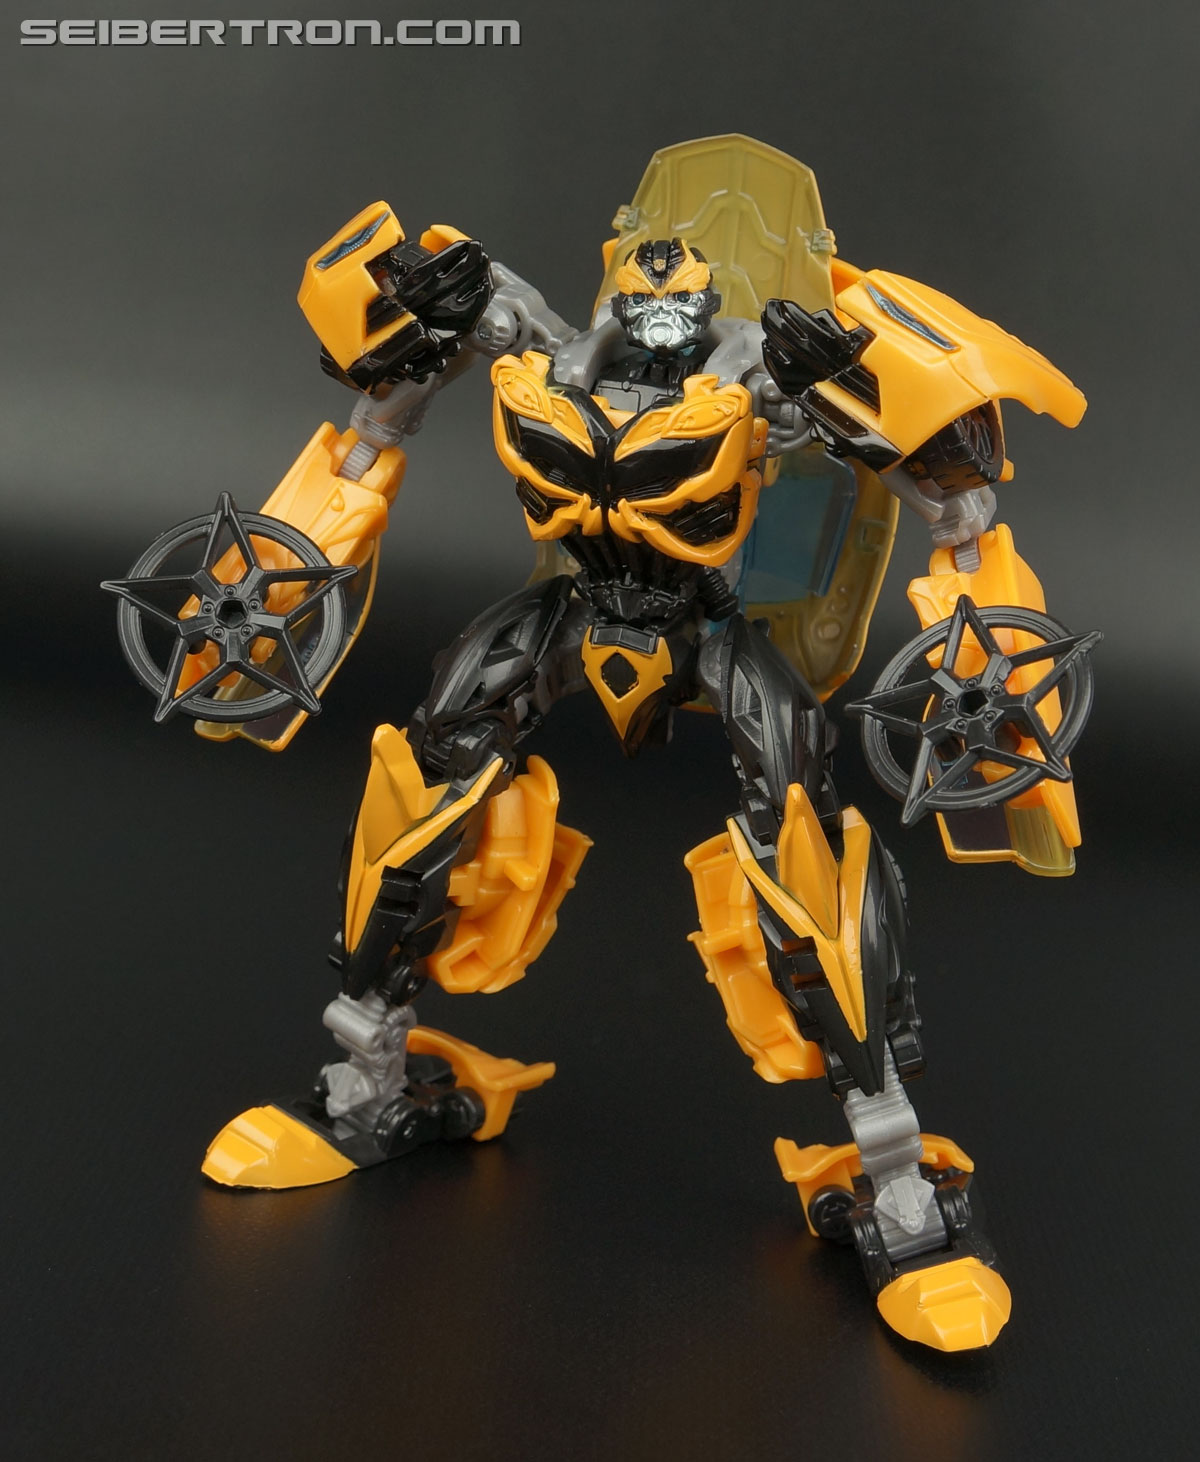 Transformers Age of Extinction: Generations Bumblebee (Image #110 of 190)